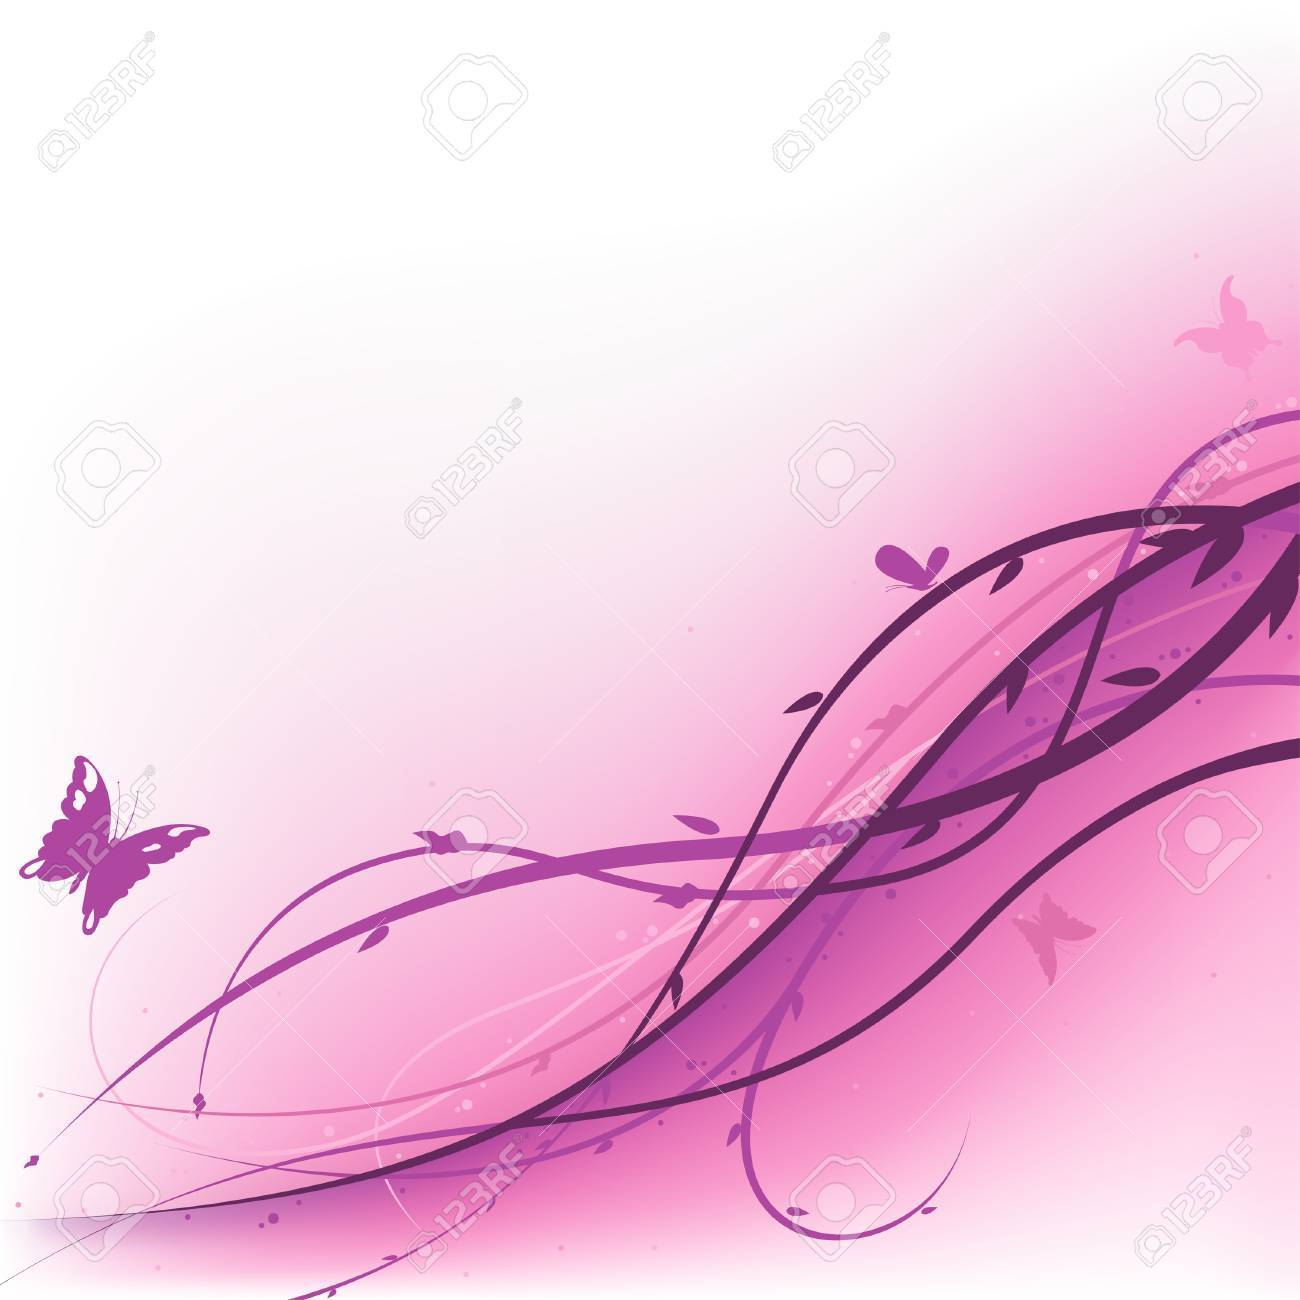 Purple Summer Floral - background illustration as vector. Stock Vector - 2920623